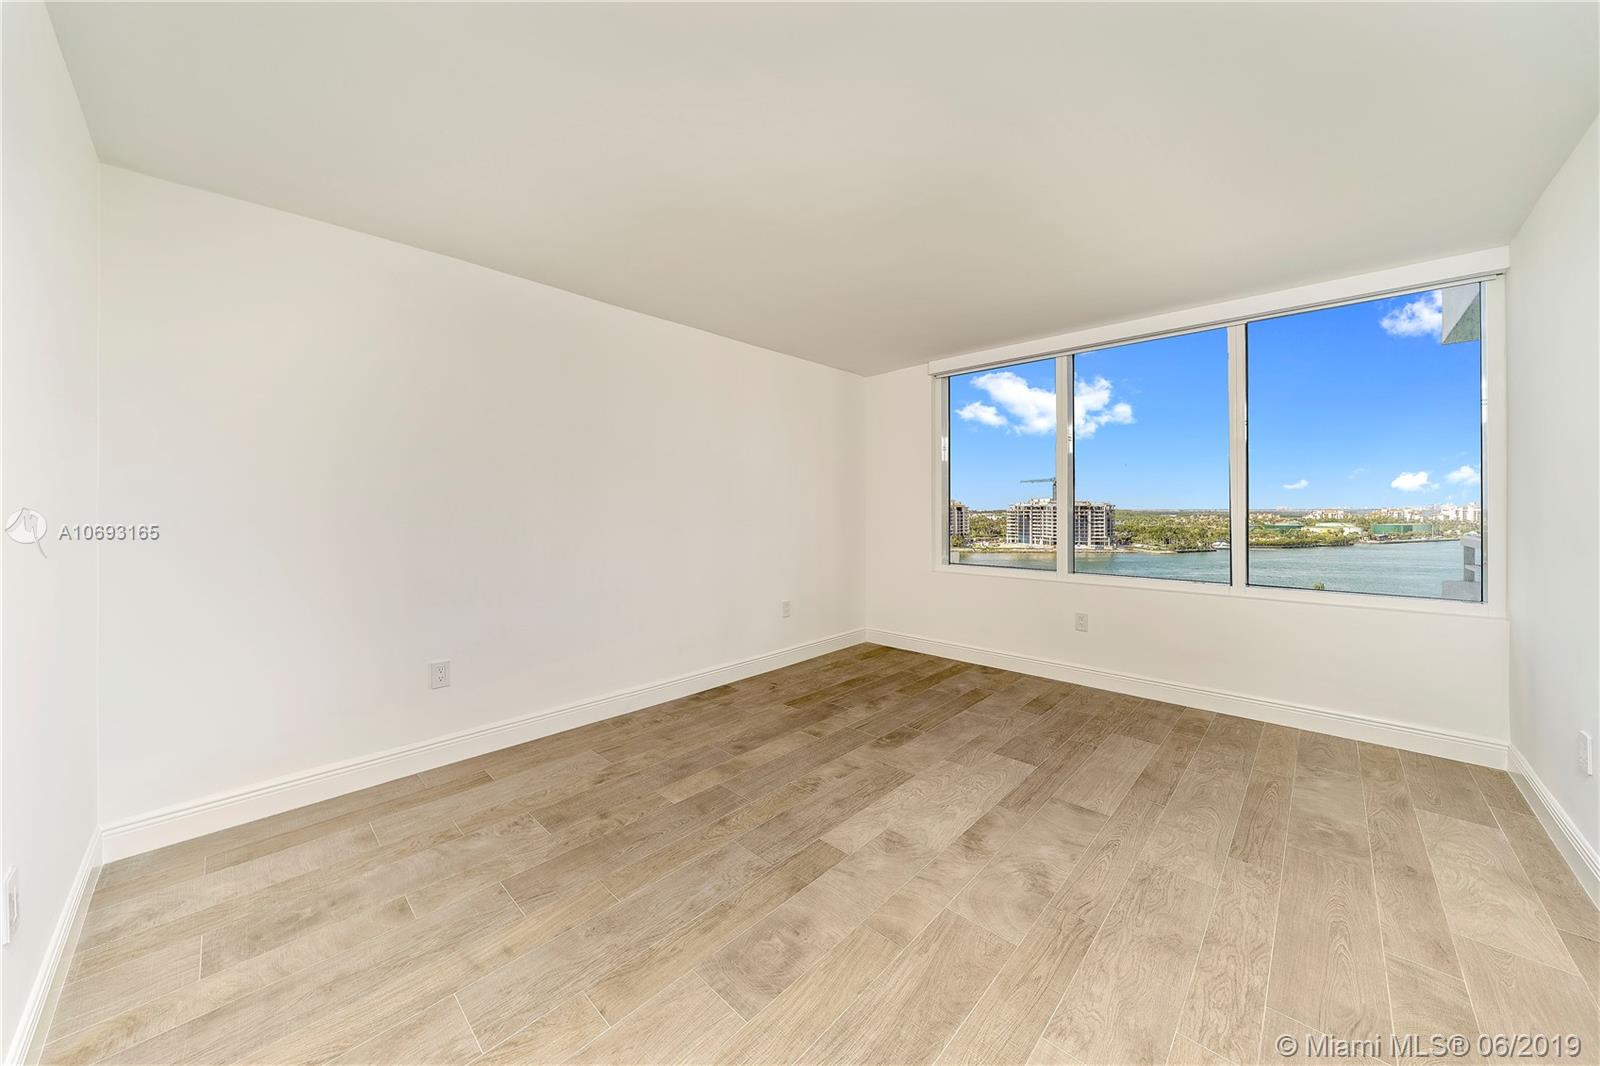 Photo of South Pointe Towers Apt 1209